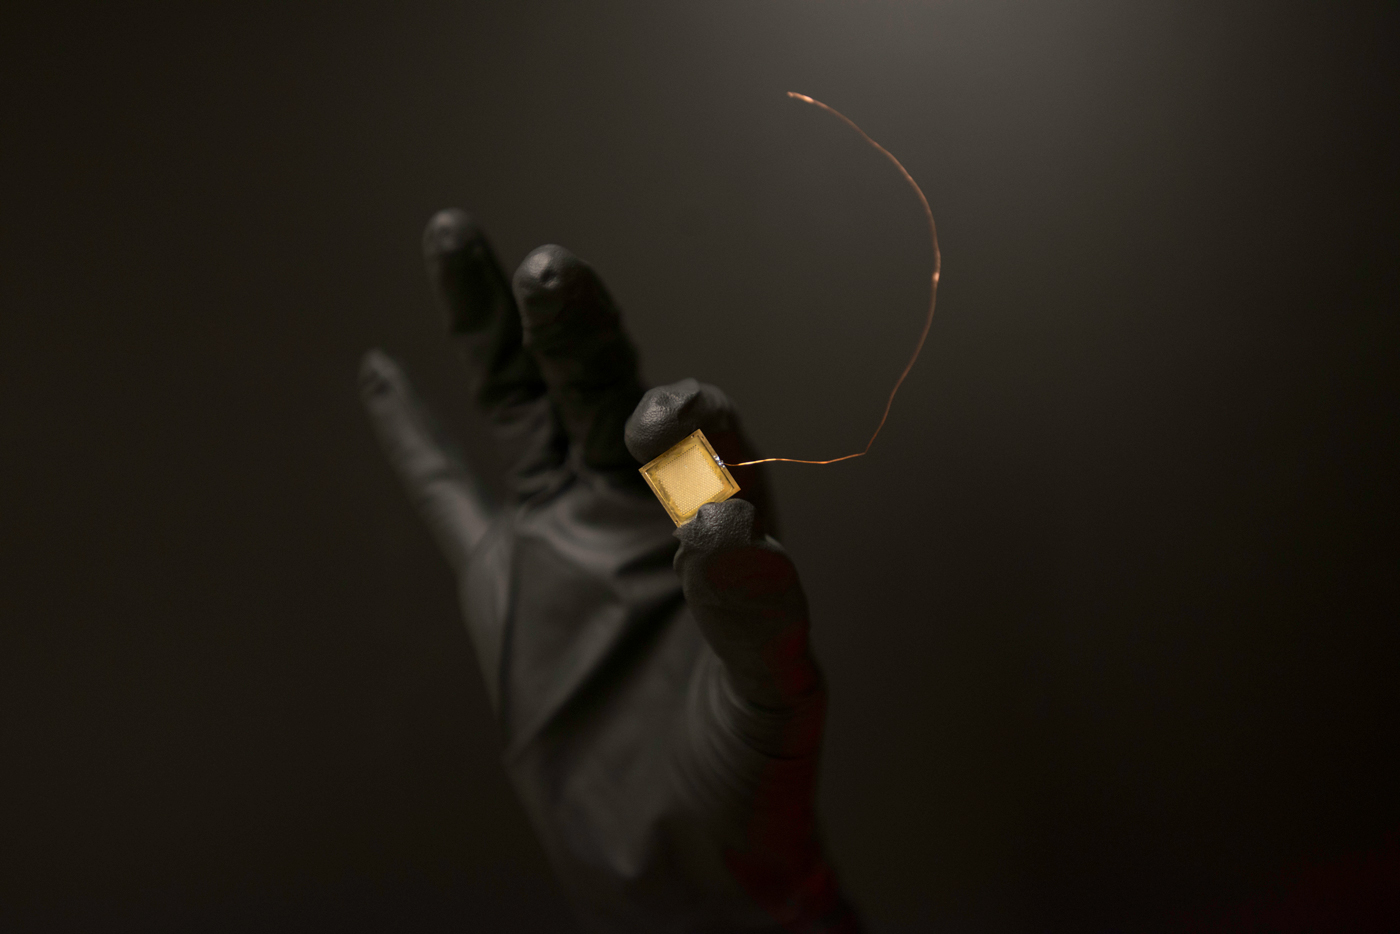 Accion's propulsion system is made to fit inside tiny satellites.